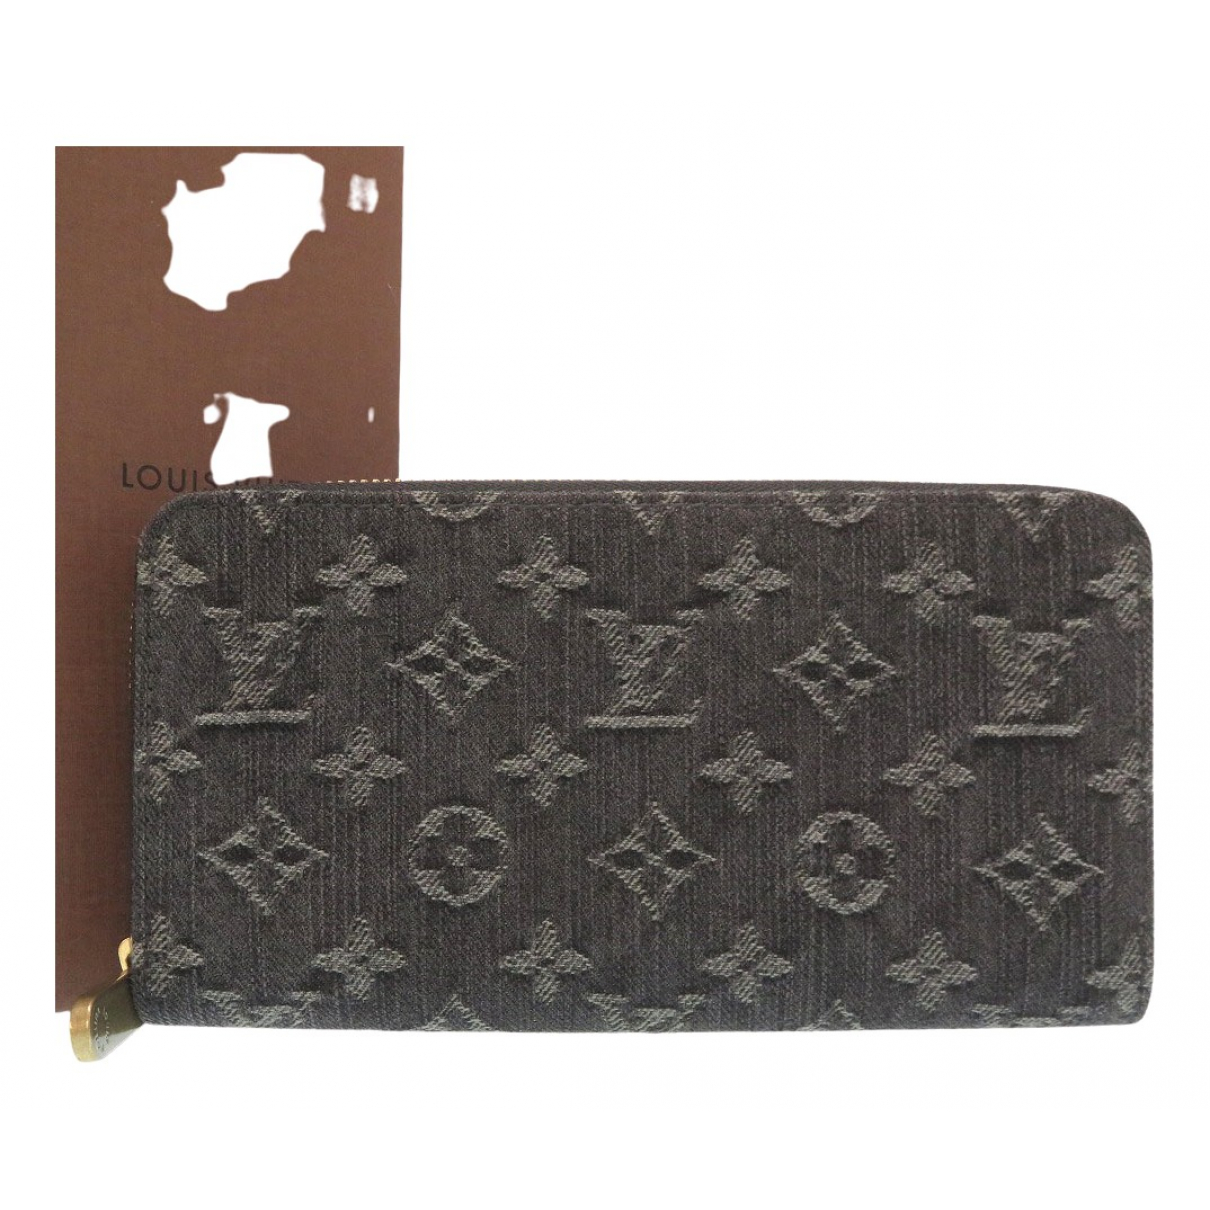 Louis Vuitton Zippy Black Denim - Jeans wallet for Women \N